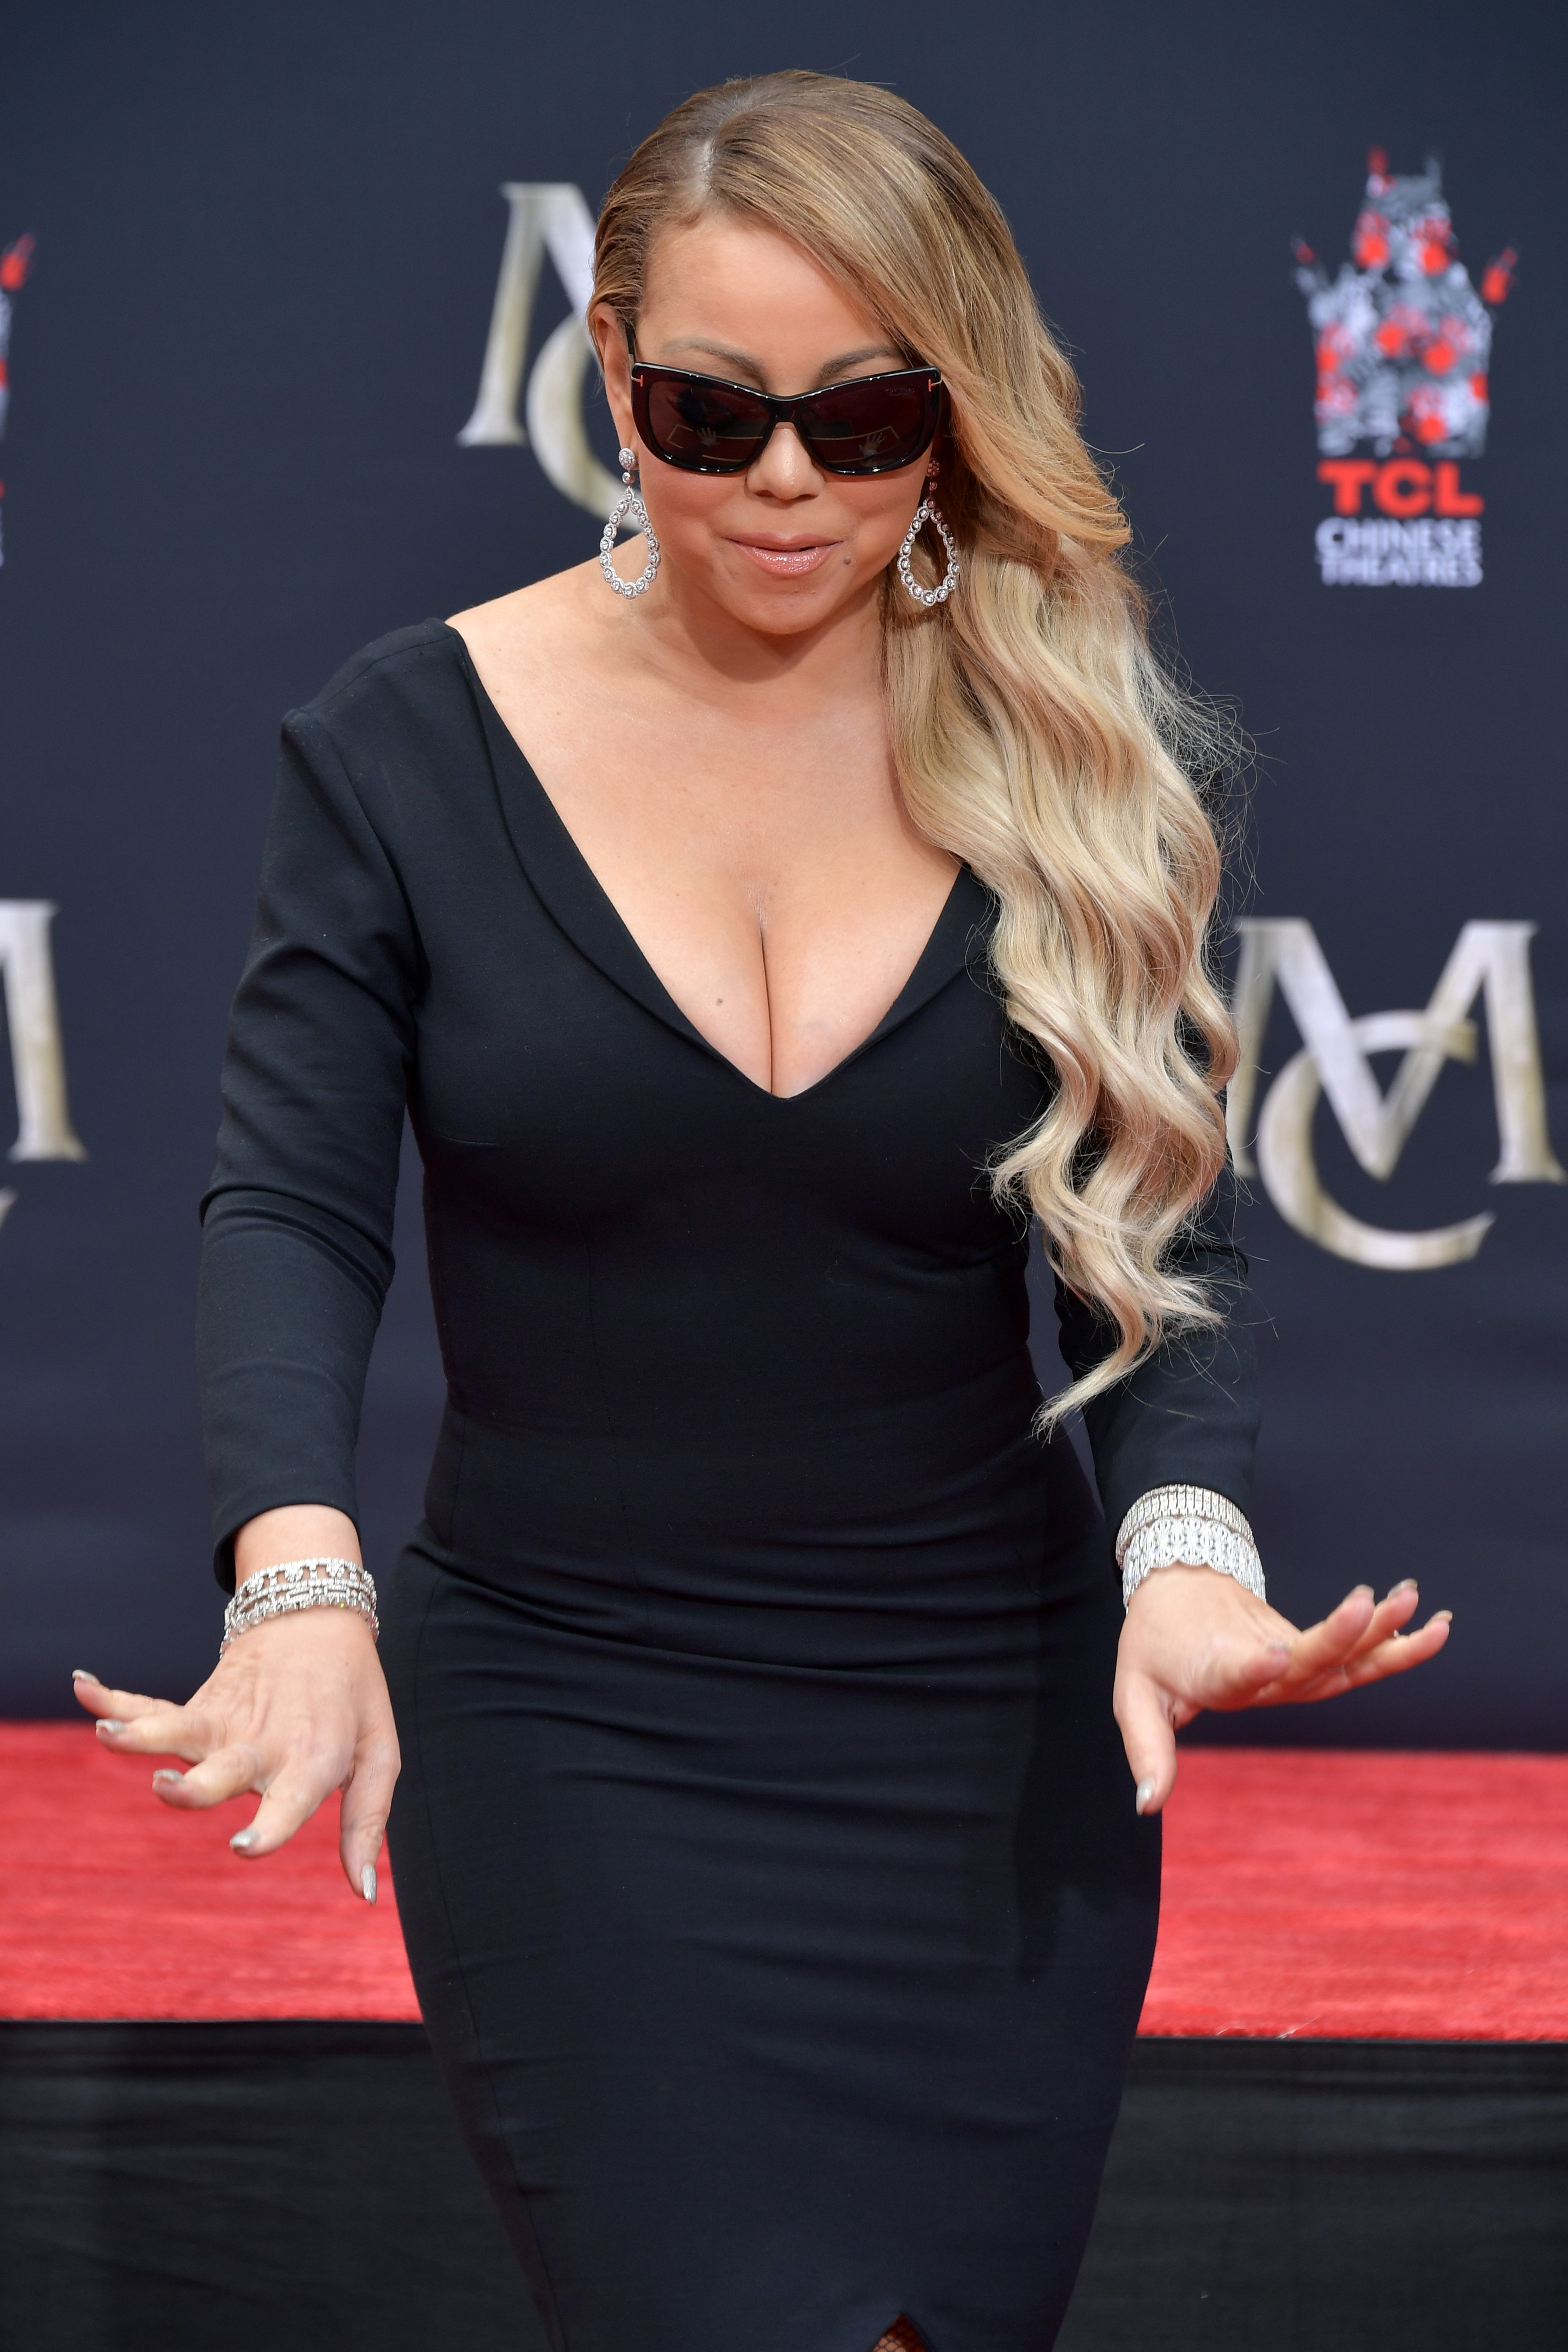 Mariah Carey is honored with a Hand and Footprint Ceremony at TCL Chinese Theatre on November 1, 2017 in Hollywood, California | Photo: GettyImages